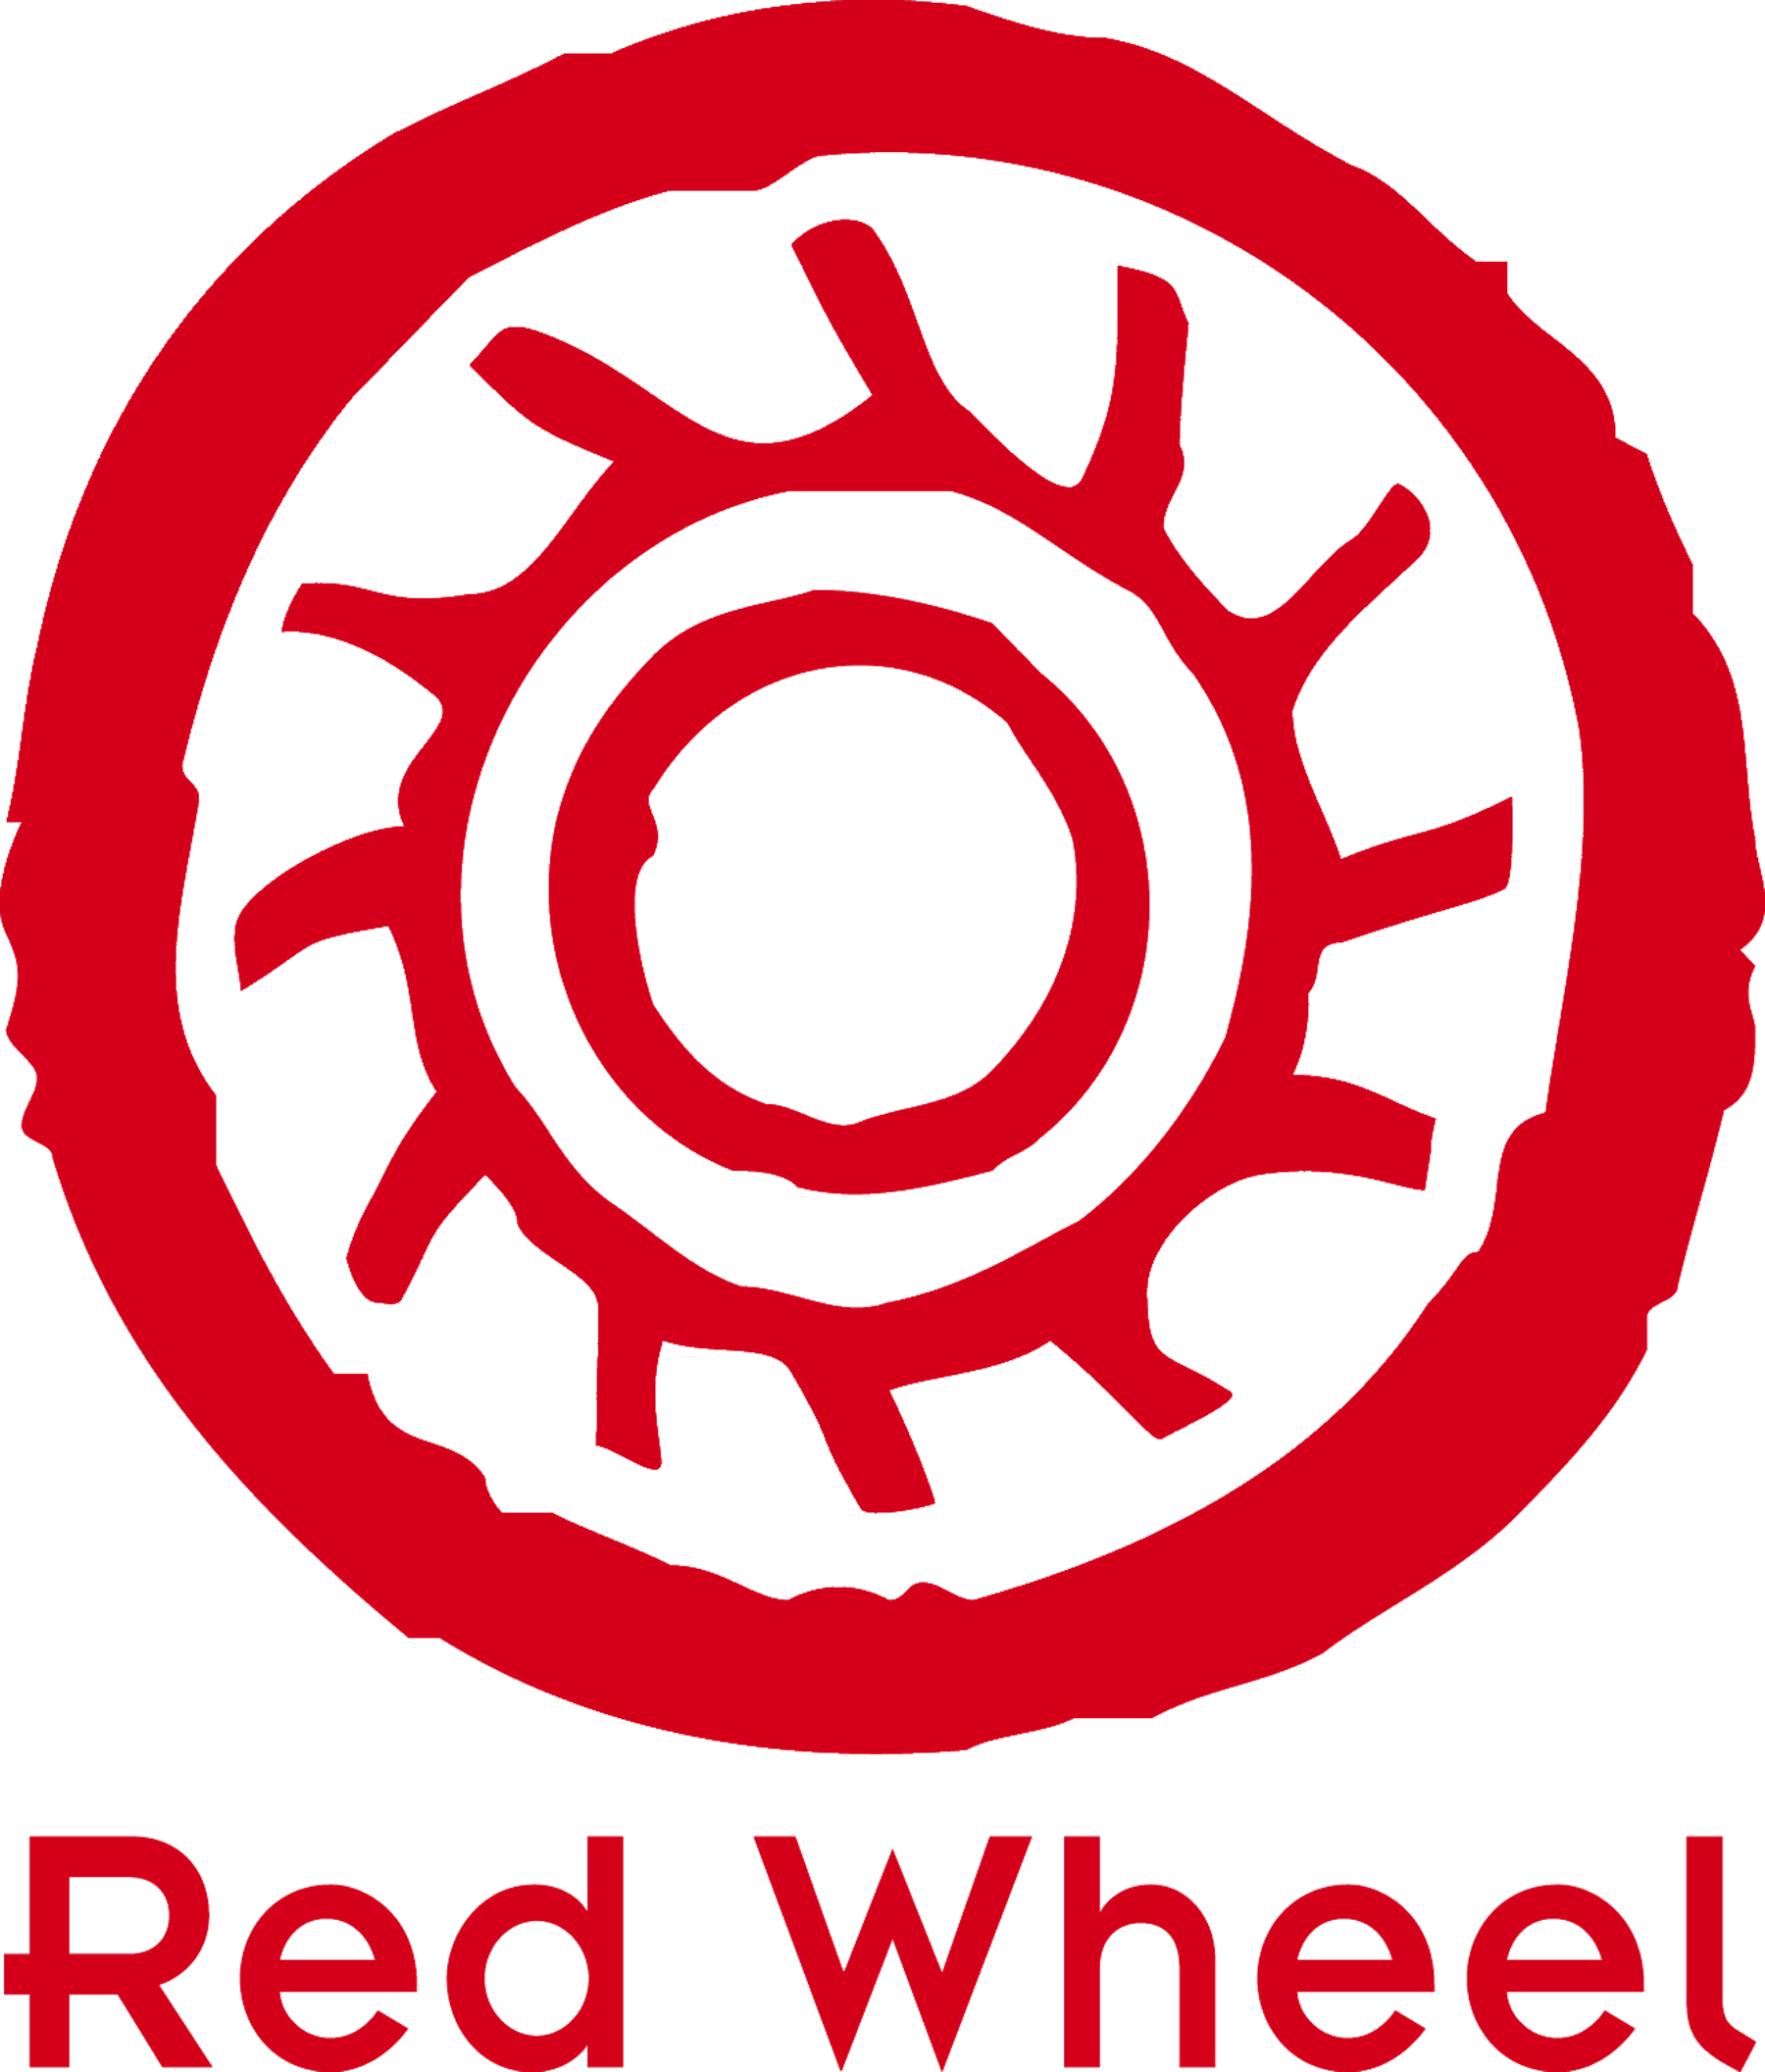 Thomas Allen and Son Welcomes Red Wheel/ Weiser!